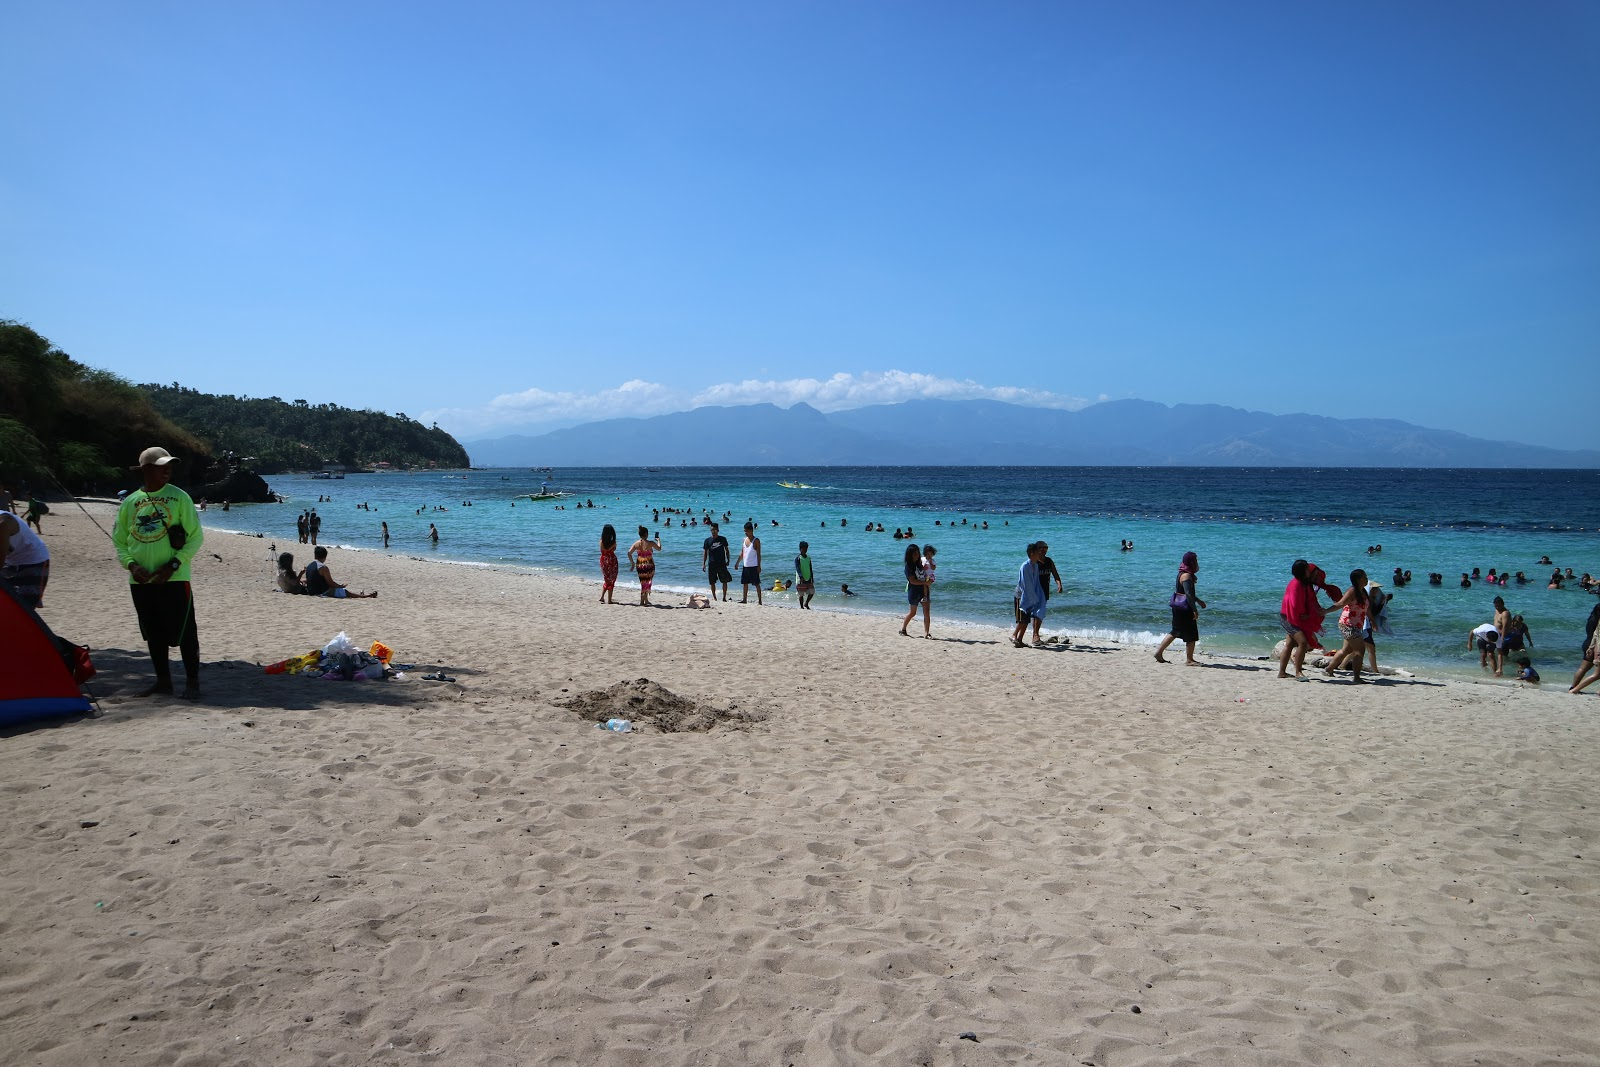 Clean Masasa Beach featuring its white sand and clear water